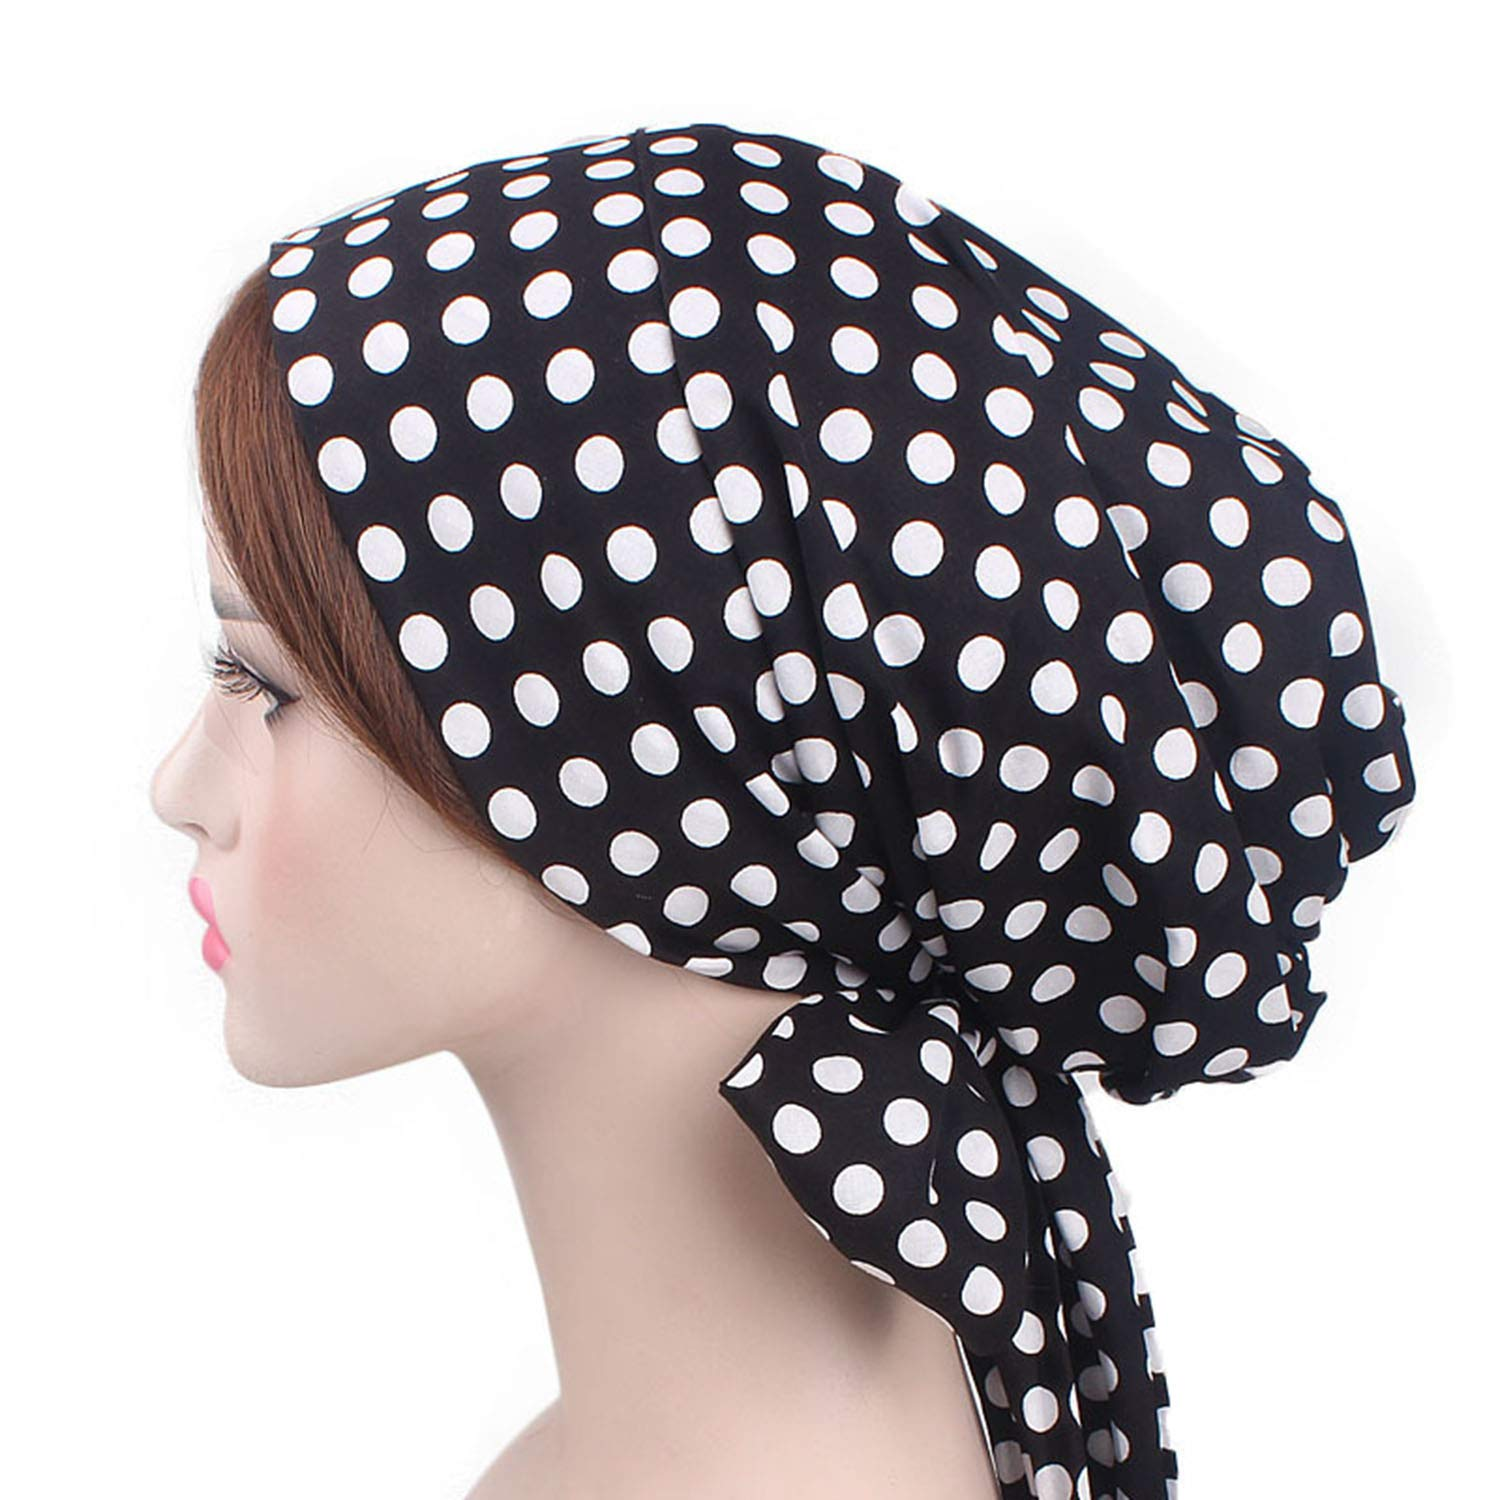 DHSPKN American Pastoral Style Headscarf Cancer Chemo Headwear Comfortable Sleeping Bonnet Night Cap Headwrap for Women by DHSPKN